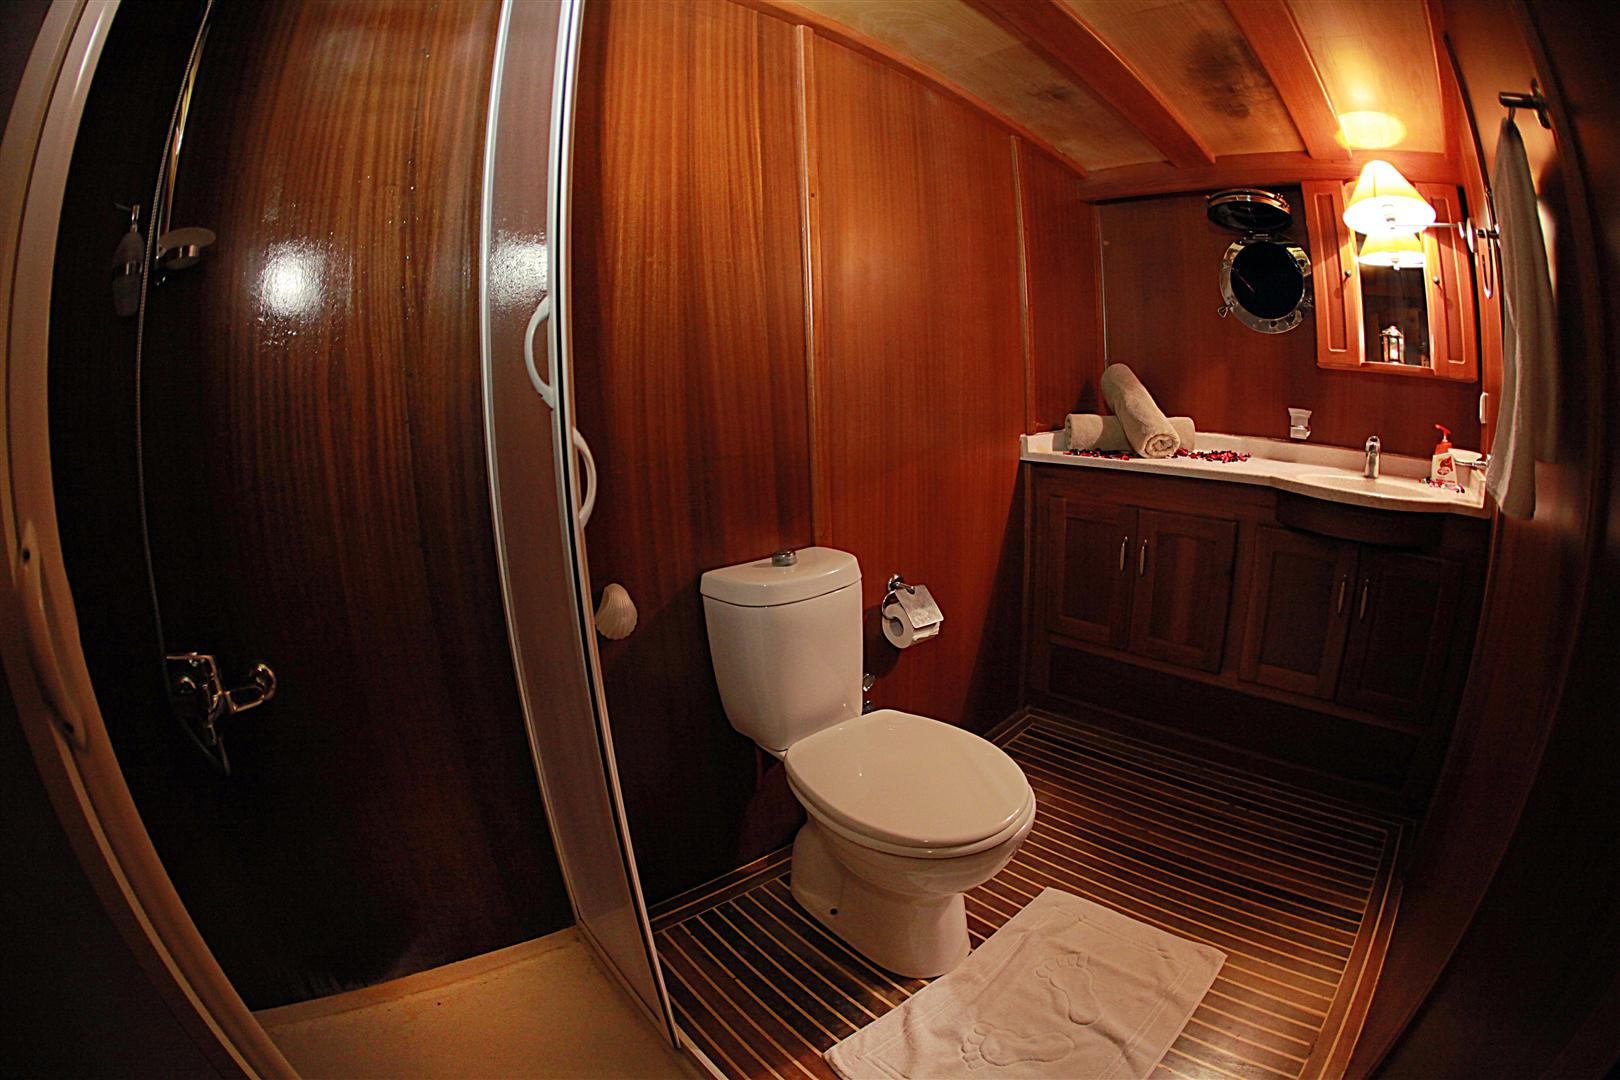 j.orcun twin cabin bathroom view.JPG